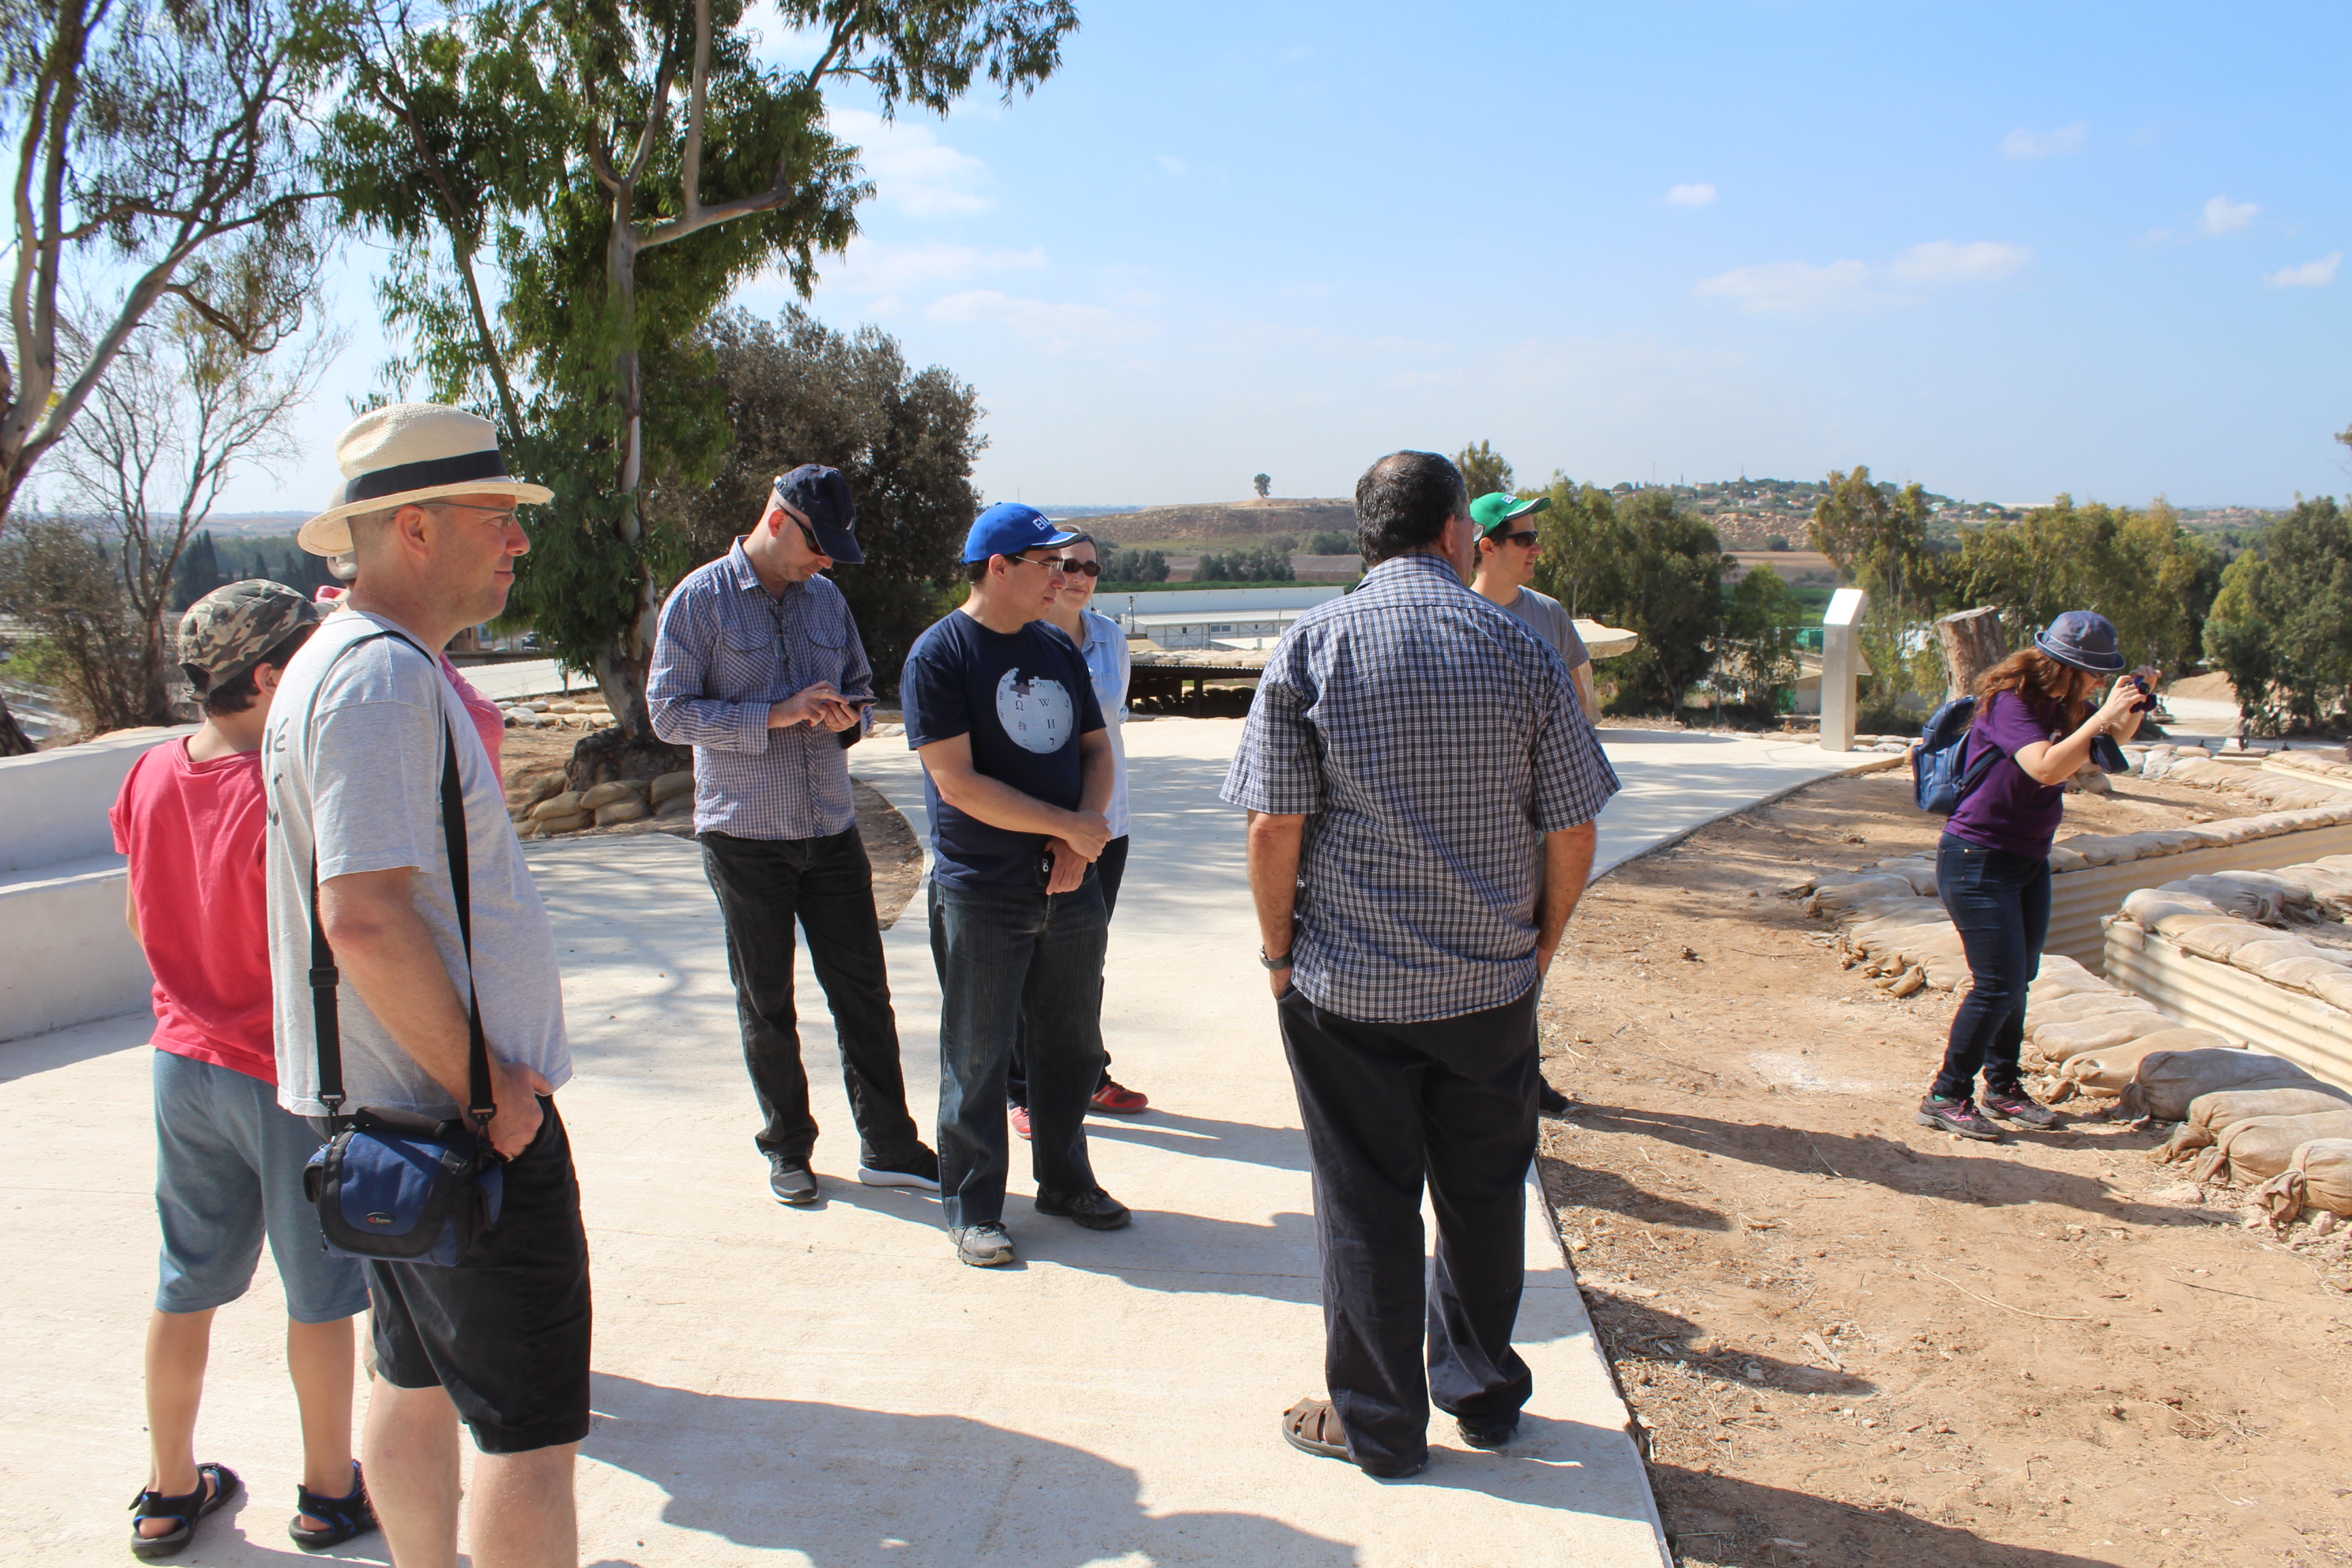 Israel private tour guide